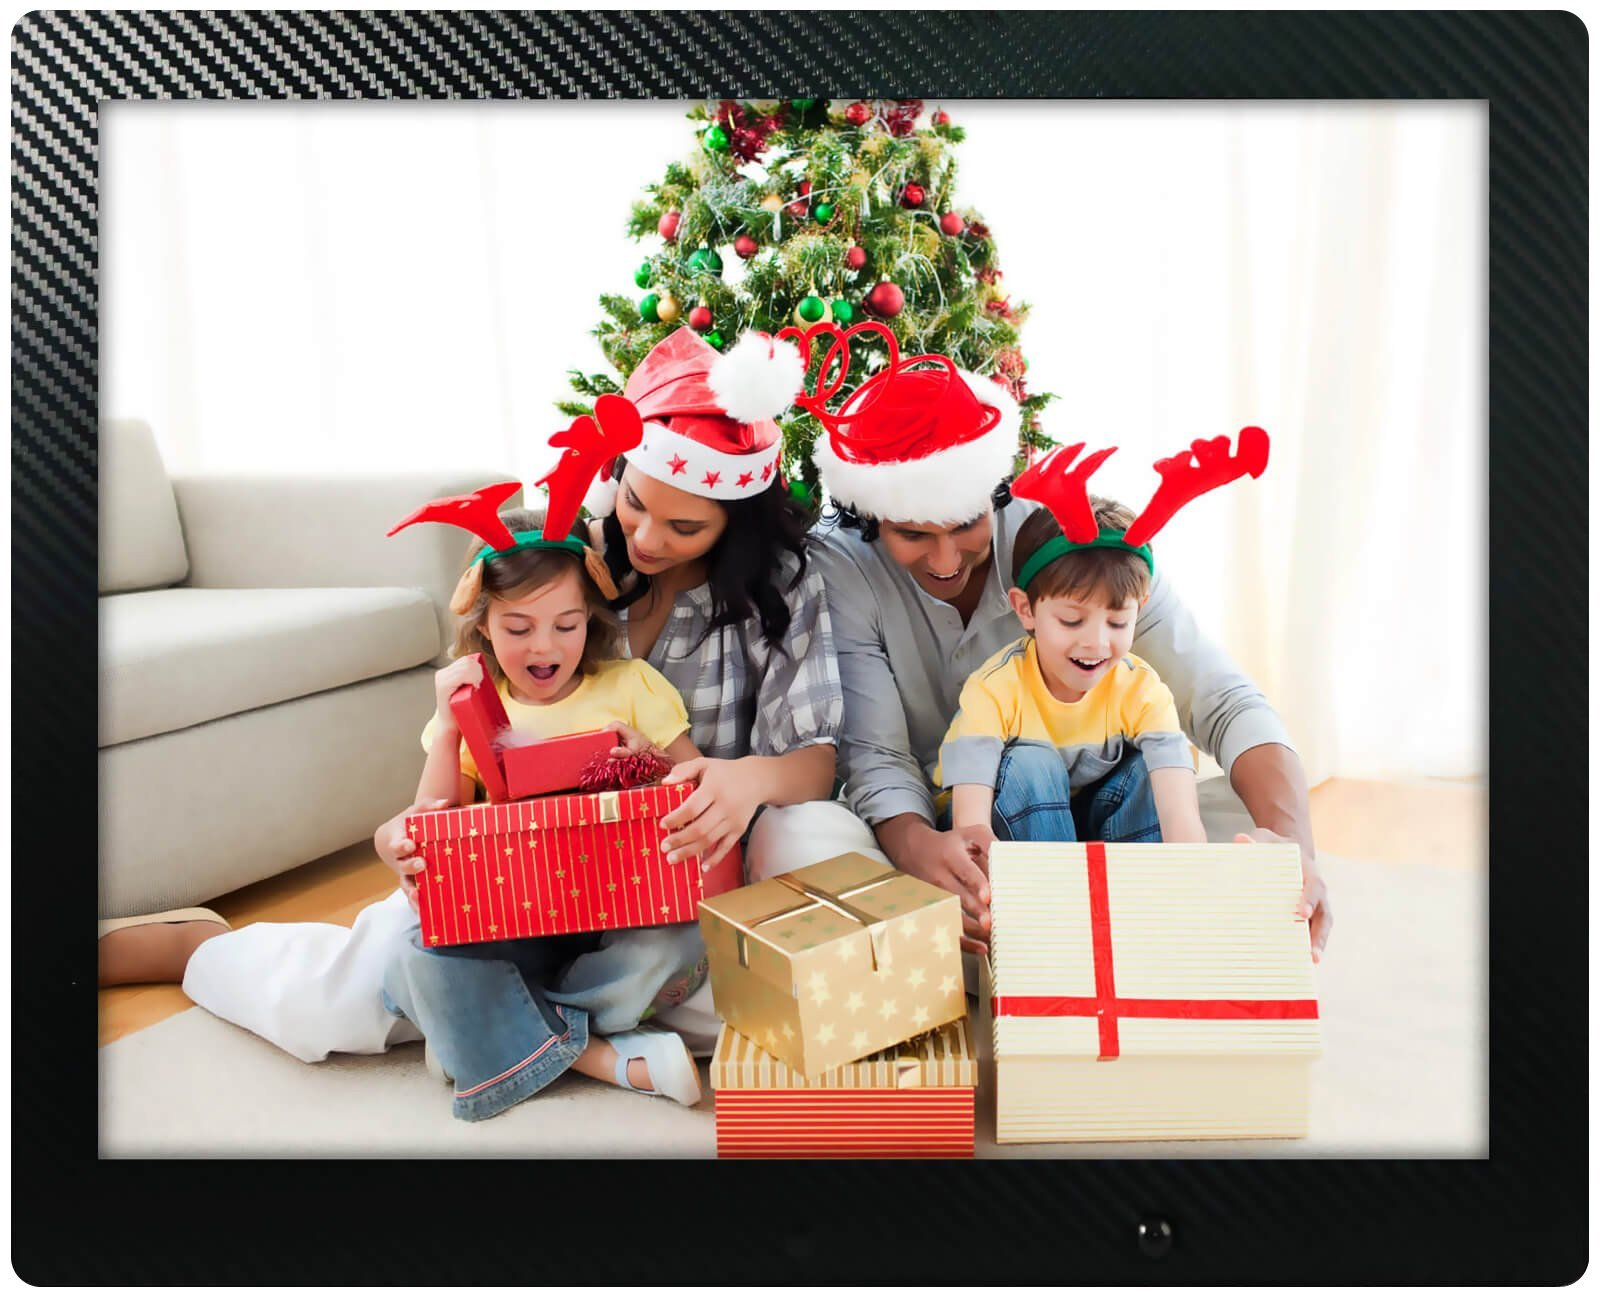 12 inch HD Digital Picture Frame Carbon Fiber - 1080p High Definition Electronic Photo Frame With Video, 16GB Memory, Motion Sensor, Built-In Speakers & Remote Control - (Black) by Spiro Goods (Image #1)